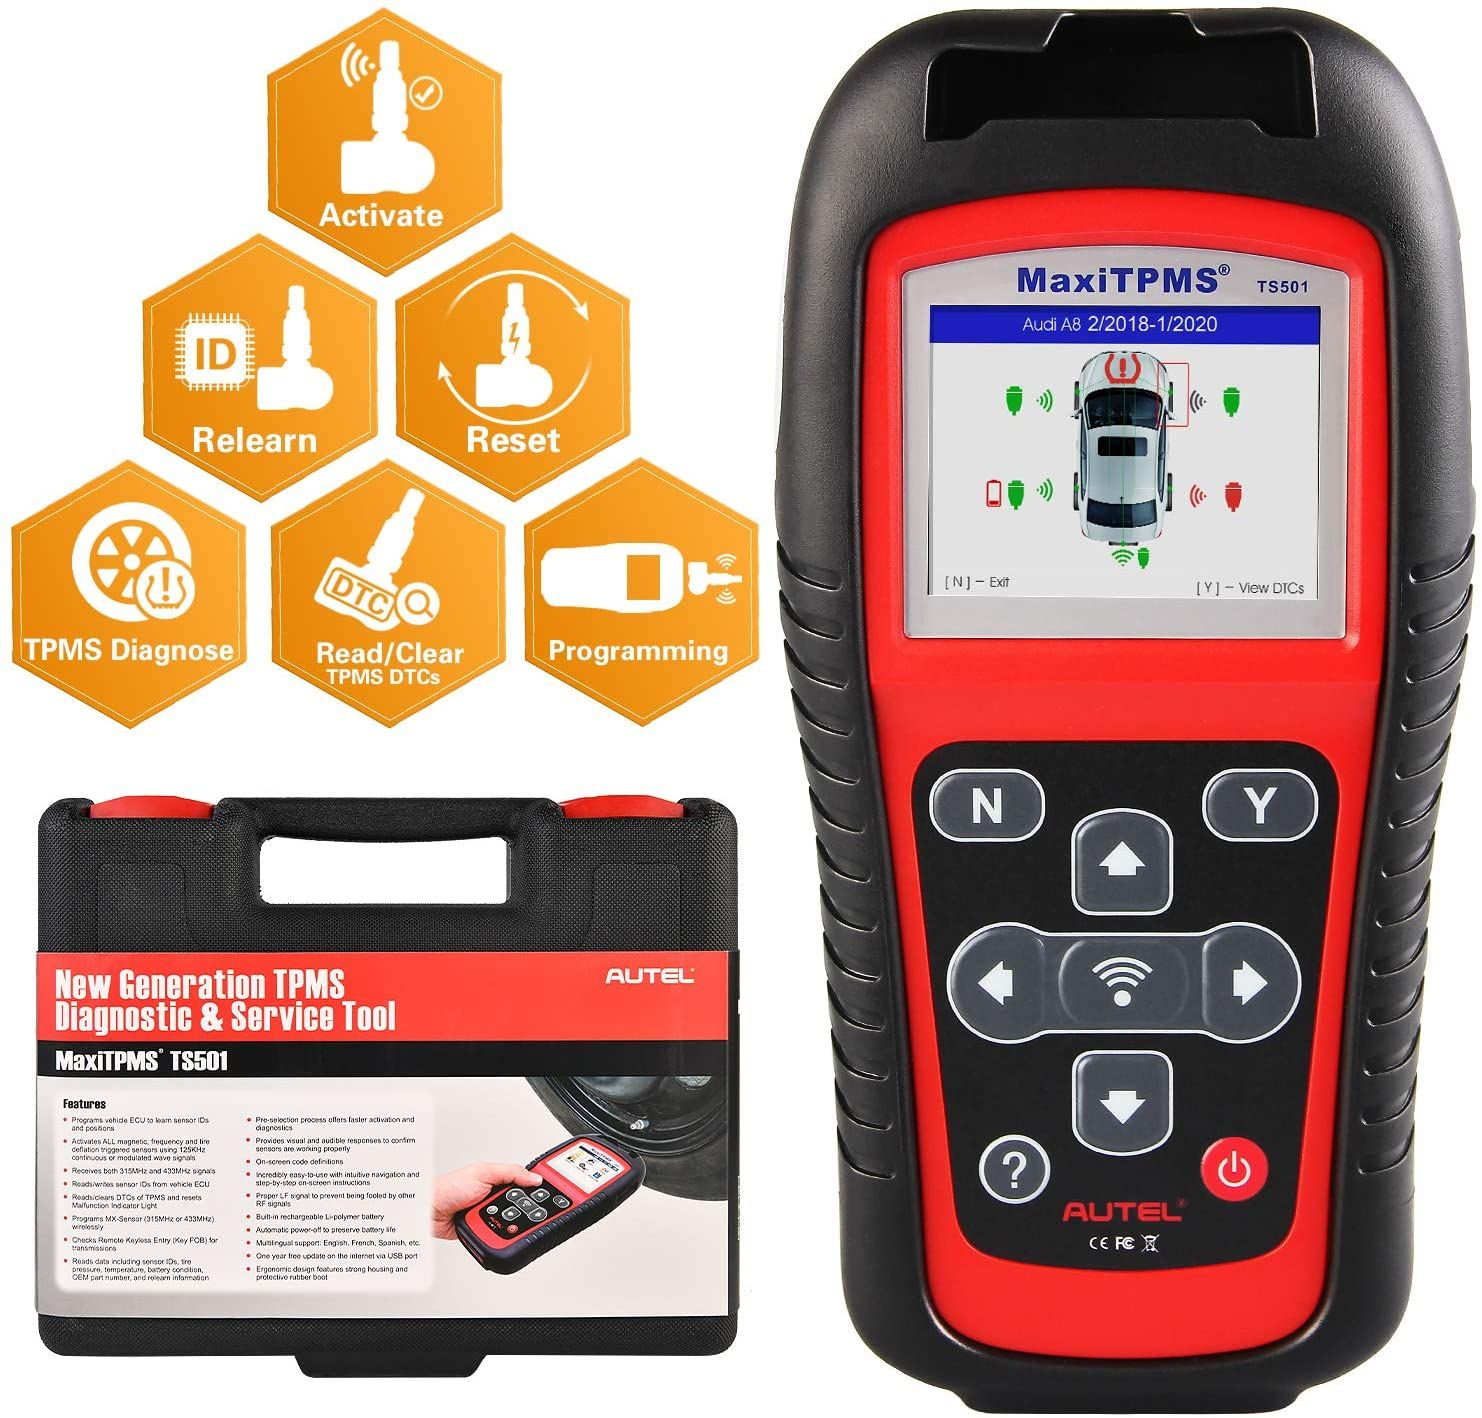 Autel Maxitpms Ts501 Tpms Relearn Tool Obd2 Scanner Upgraded Version Of Ts408 With Program Mx S Obd2 Scanner Obd2 Obd